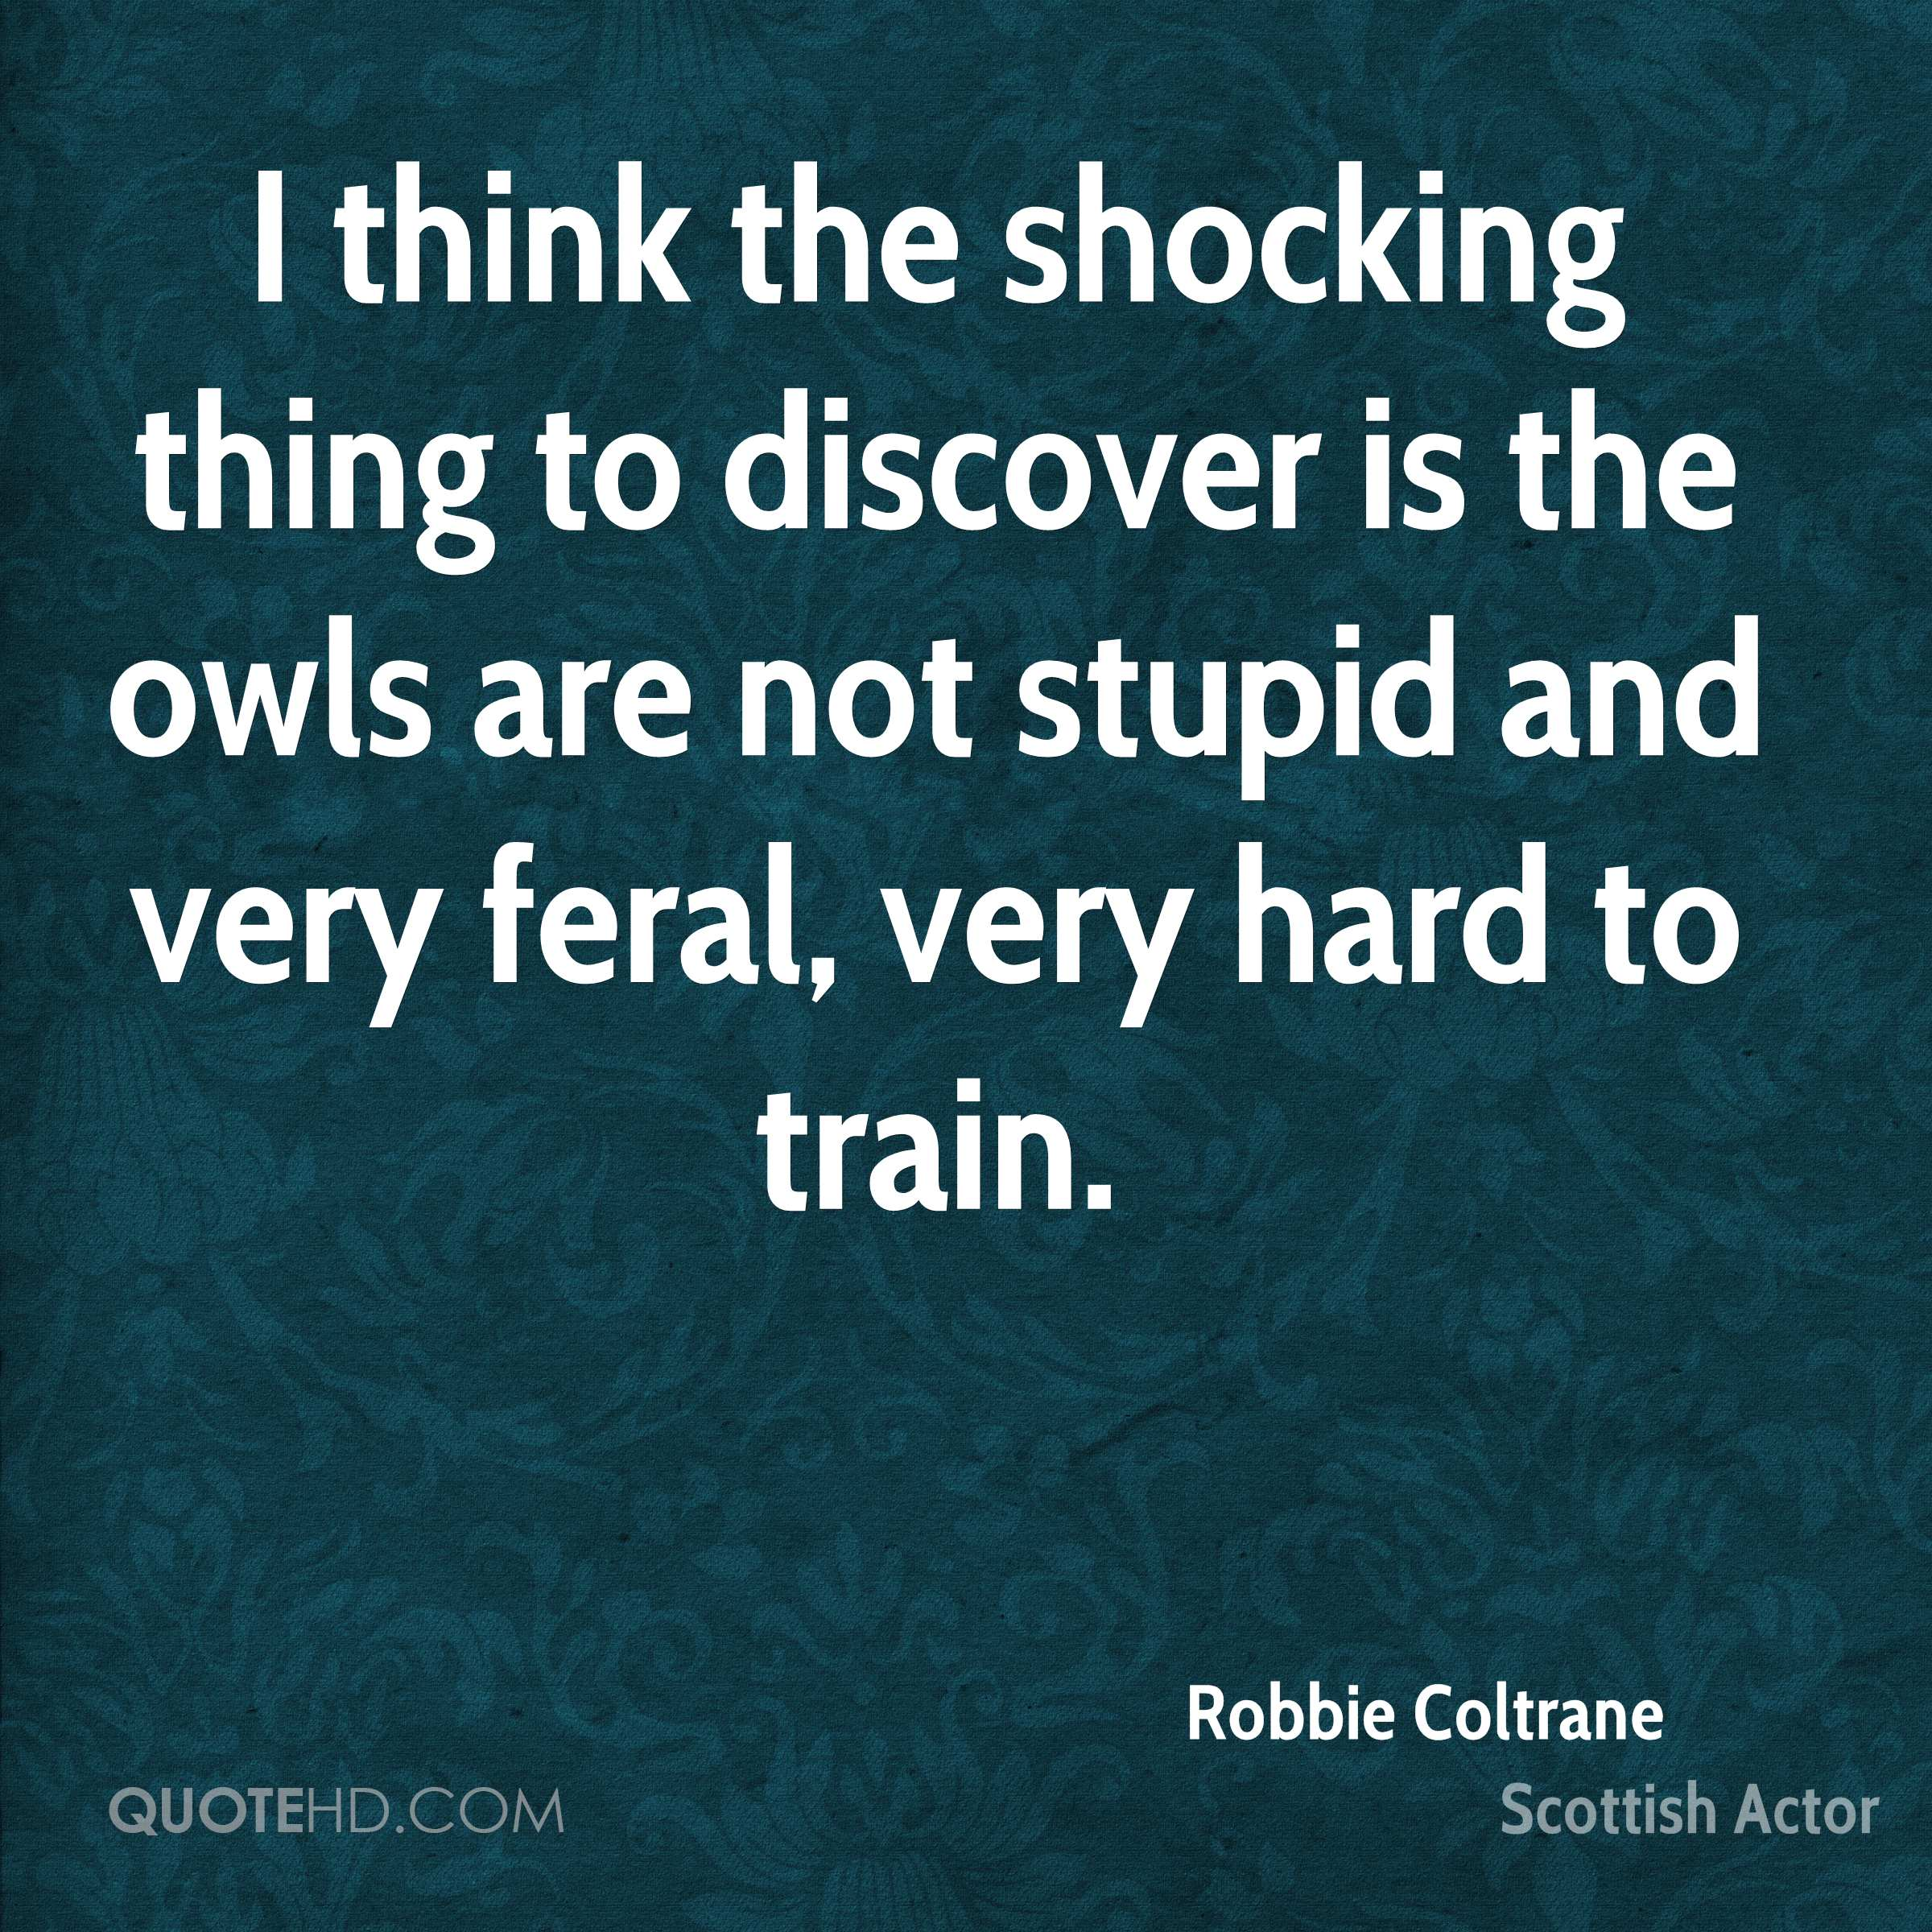 I think the shocking thing to discover is the owls are not stupid and very feral, very hard to train.